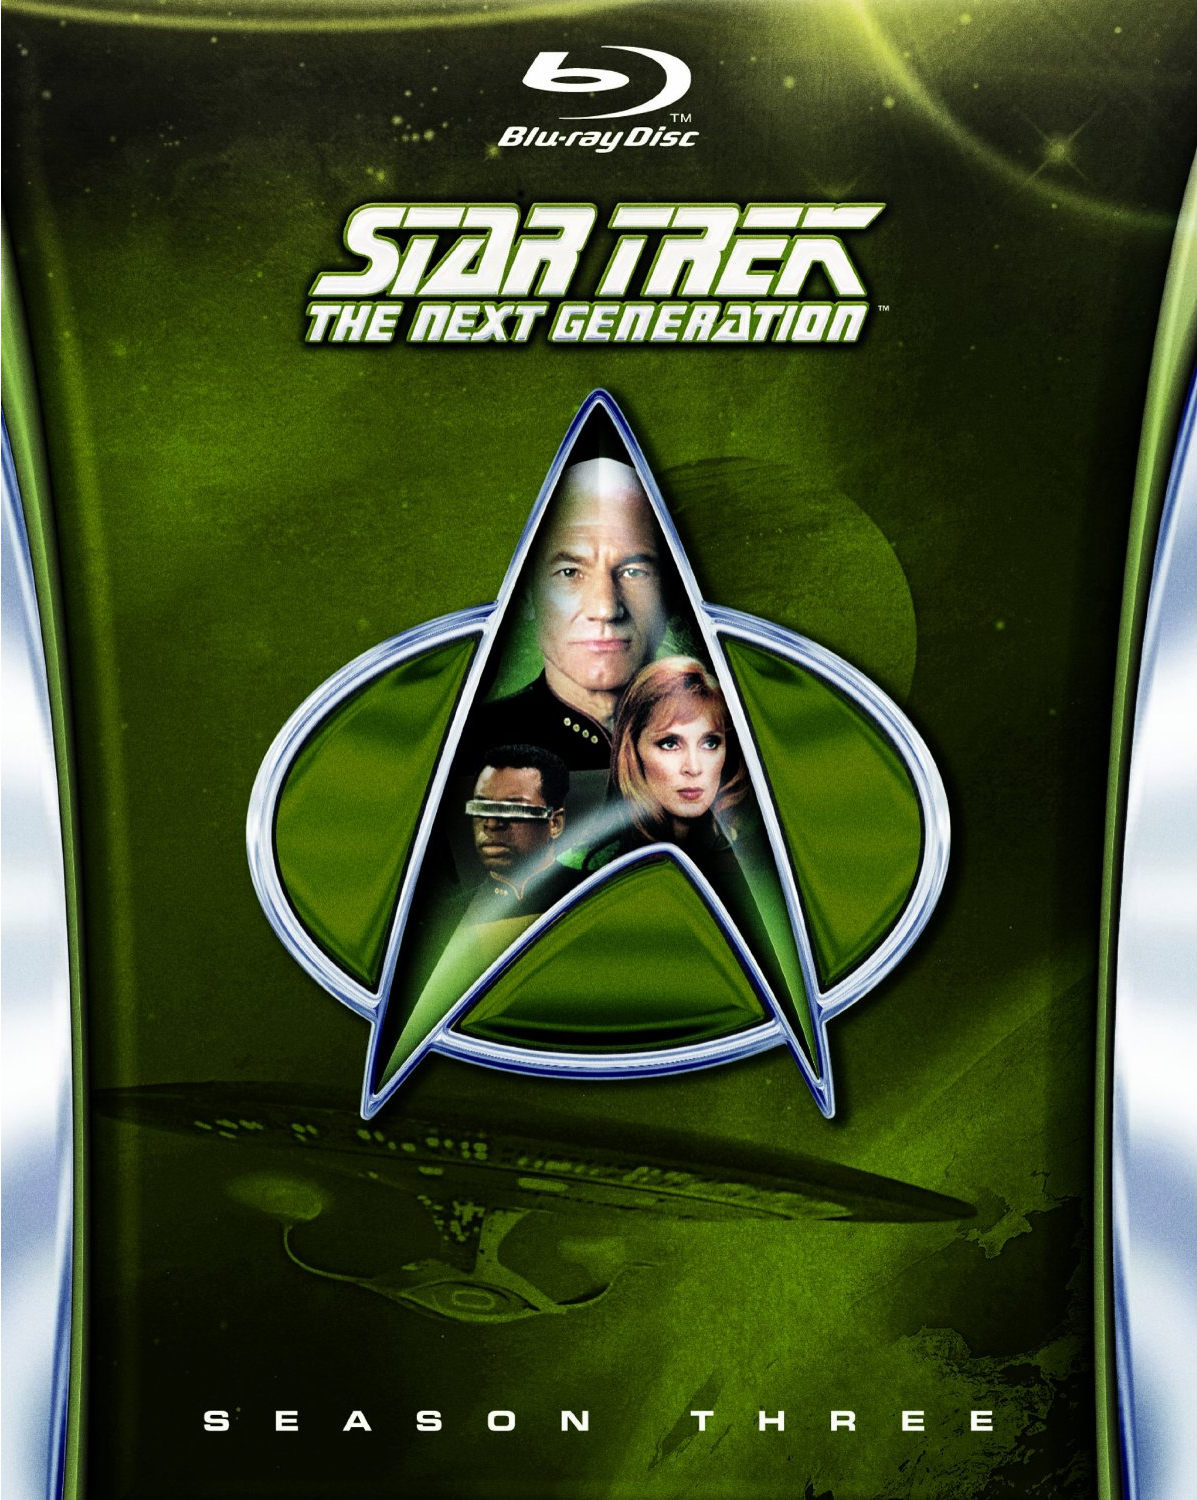 Star Trek The Next Generation Season3 bluray - Star Trek TNG